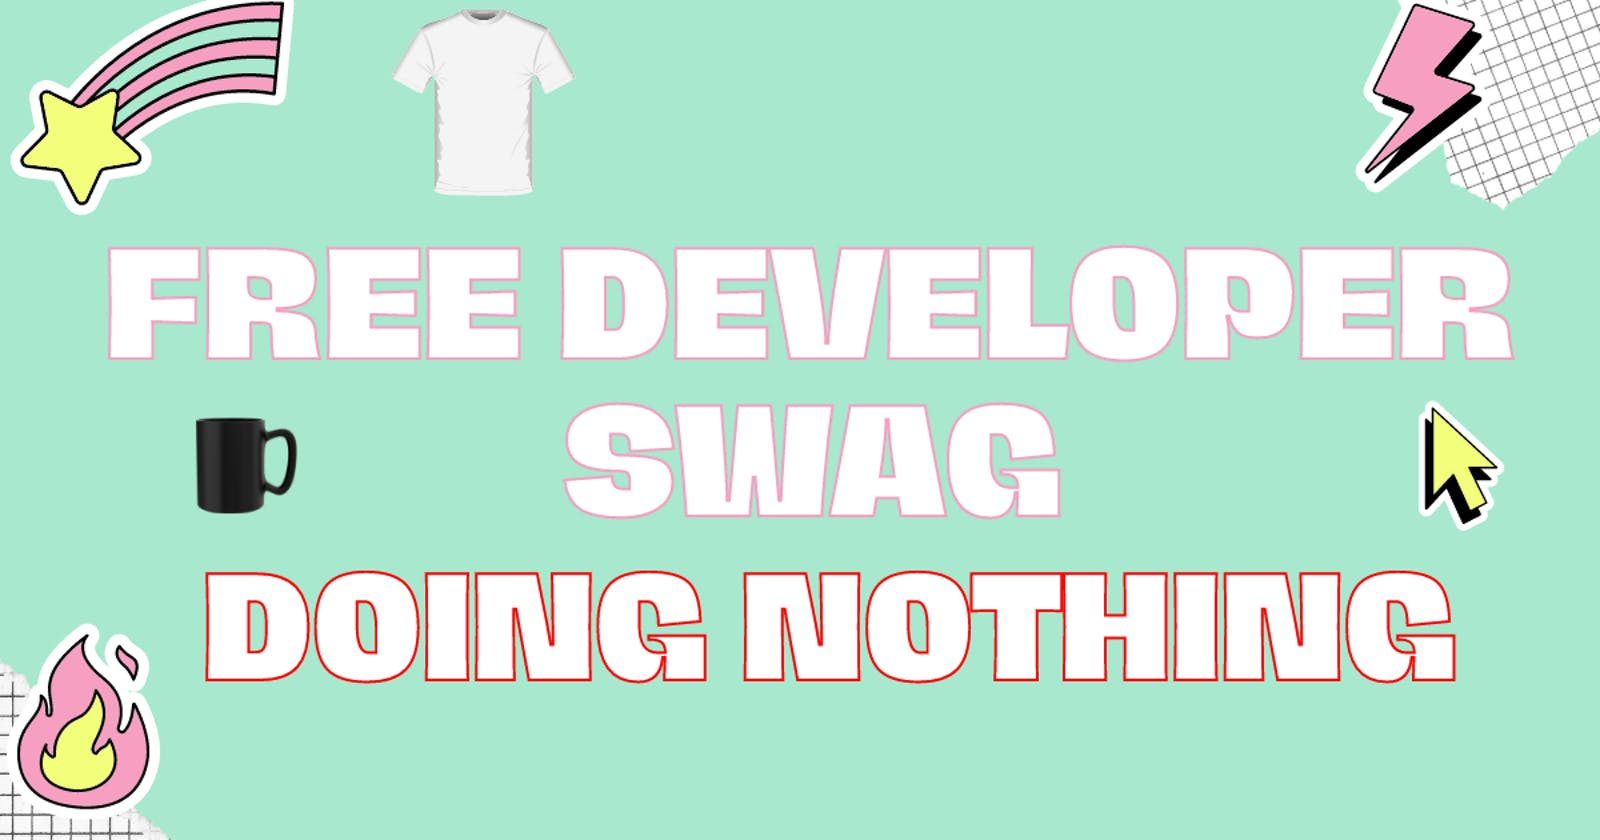 🤩10 Websites to get free Developer Swags doing NOTHING